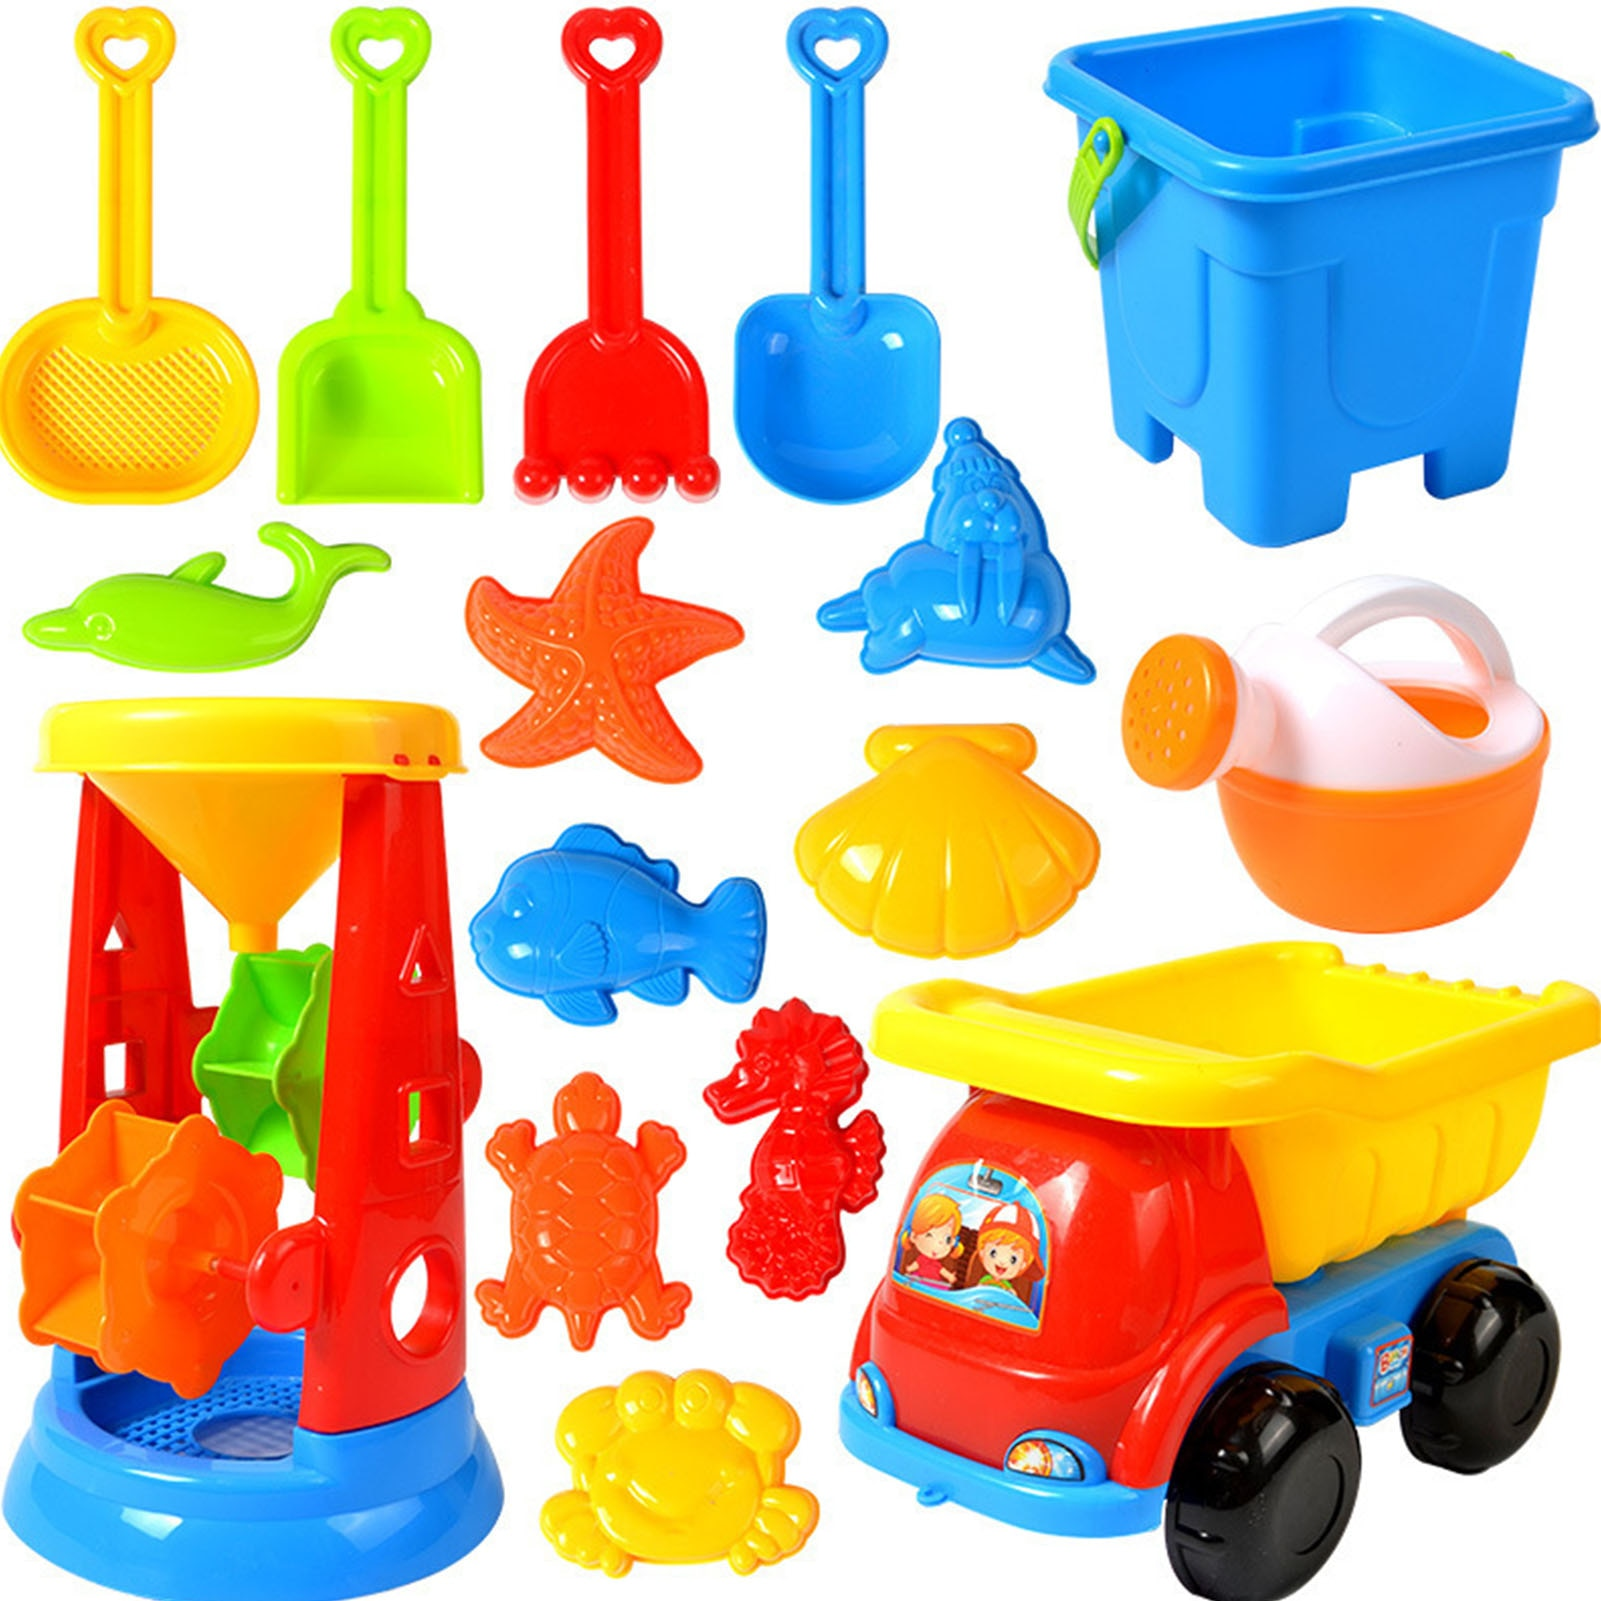 Summer Sand Box Beach Toy Set Sand Bucket Set Sand Playing Toys For Children Outdoor Beach Tool Sand Toys Kits Gifts starry sky sand beach toy 18 piece sand set magic space clay sand puzzle power toys